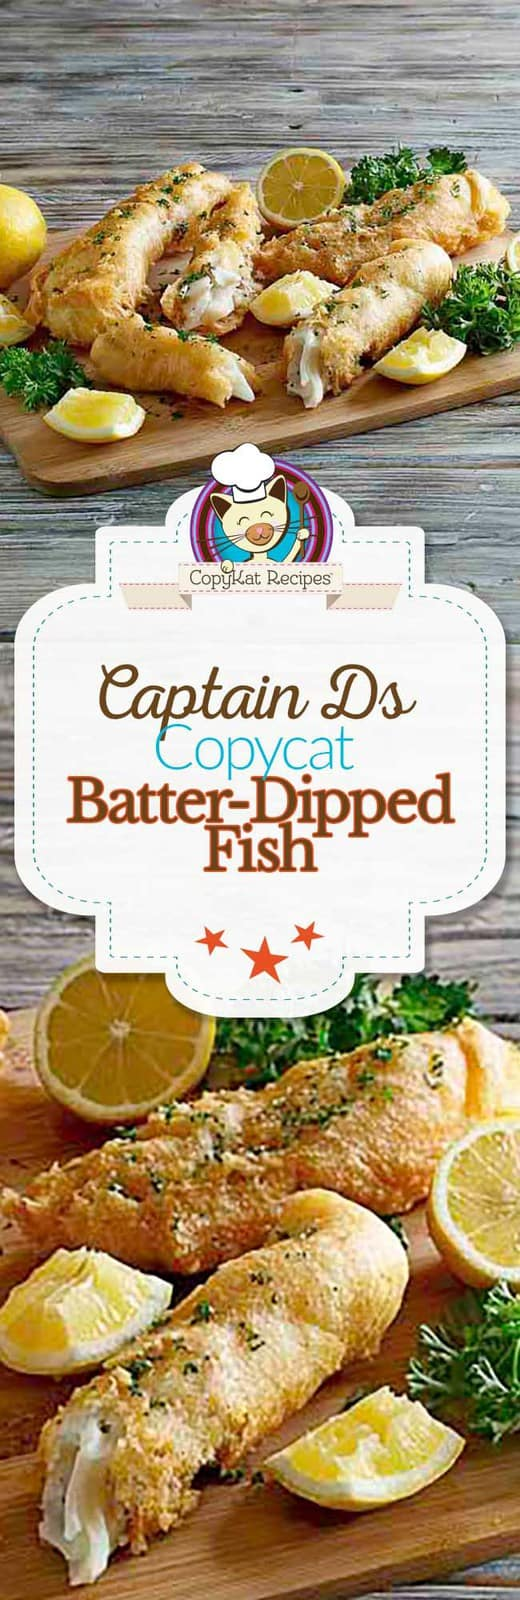 captain ds batter dipped fish ForCaptain D S Batter Dipped Fish